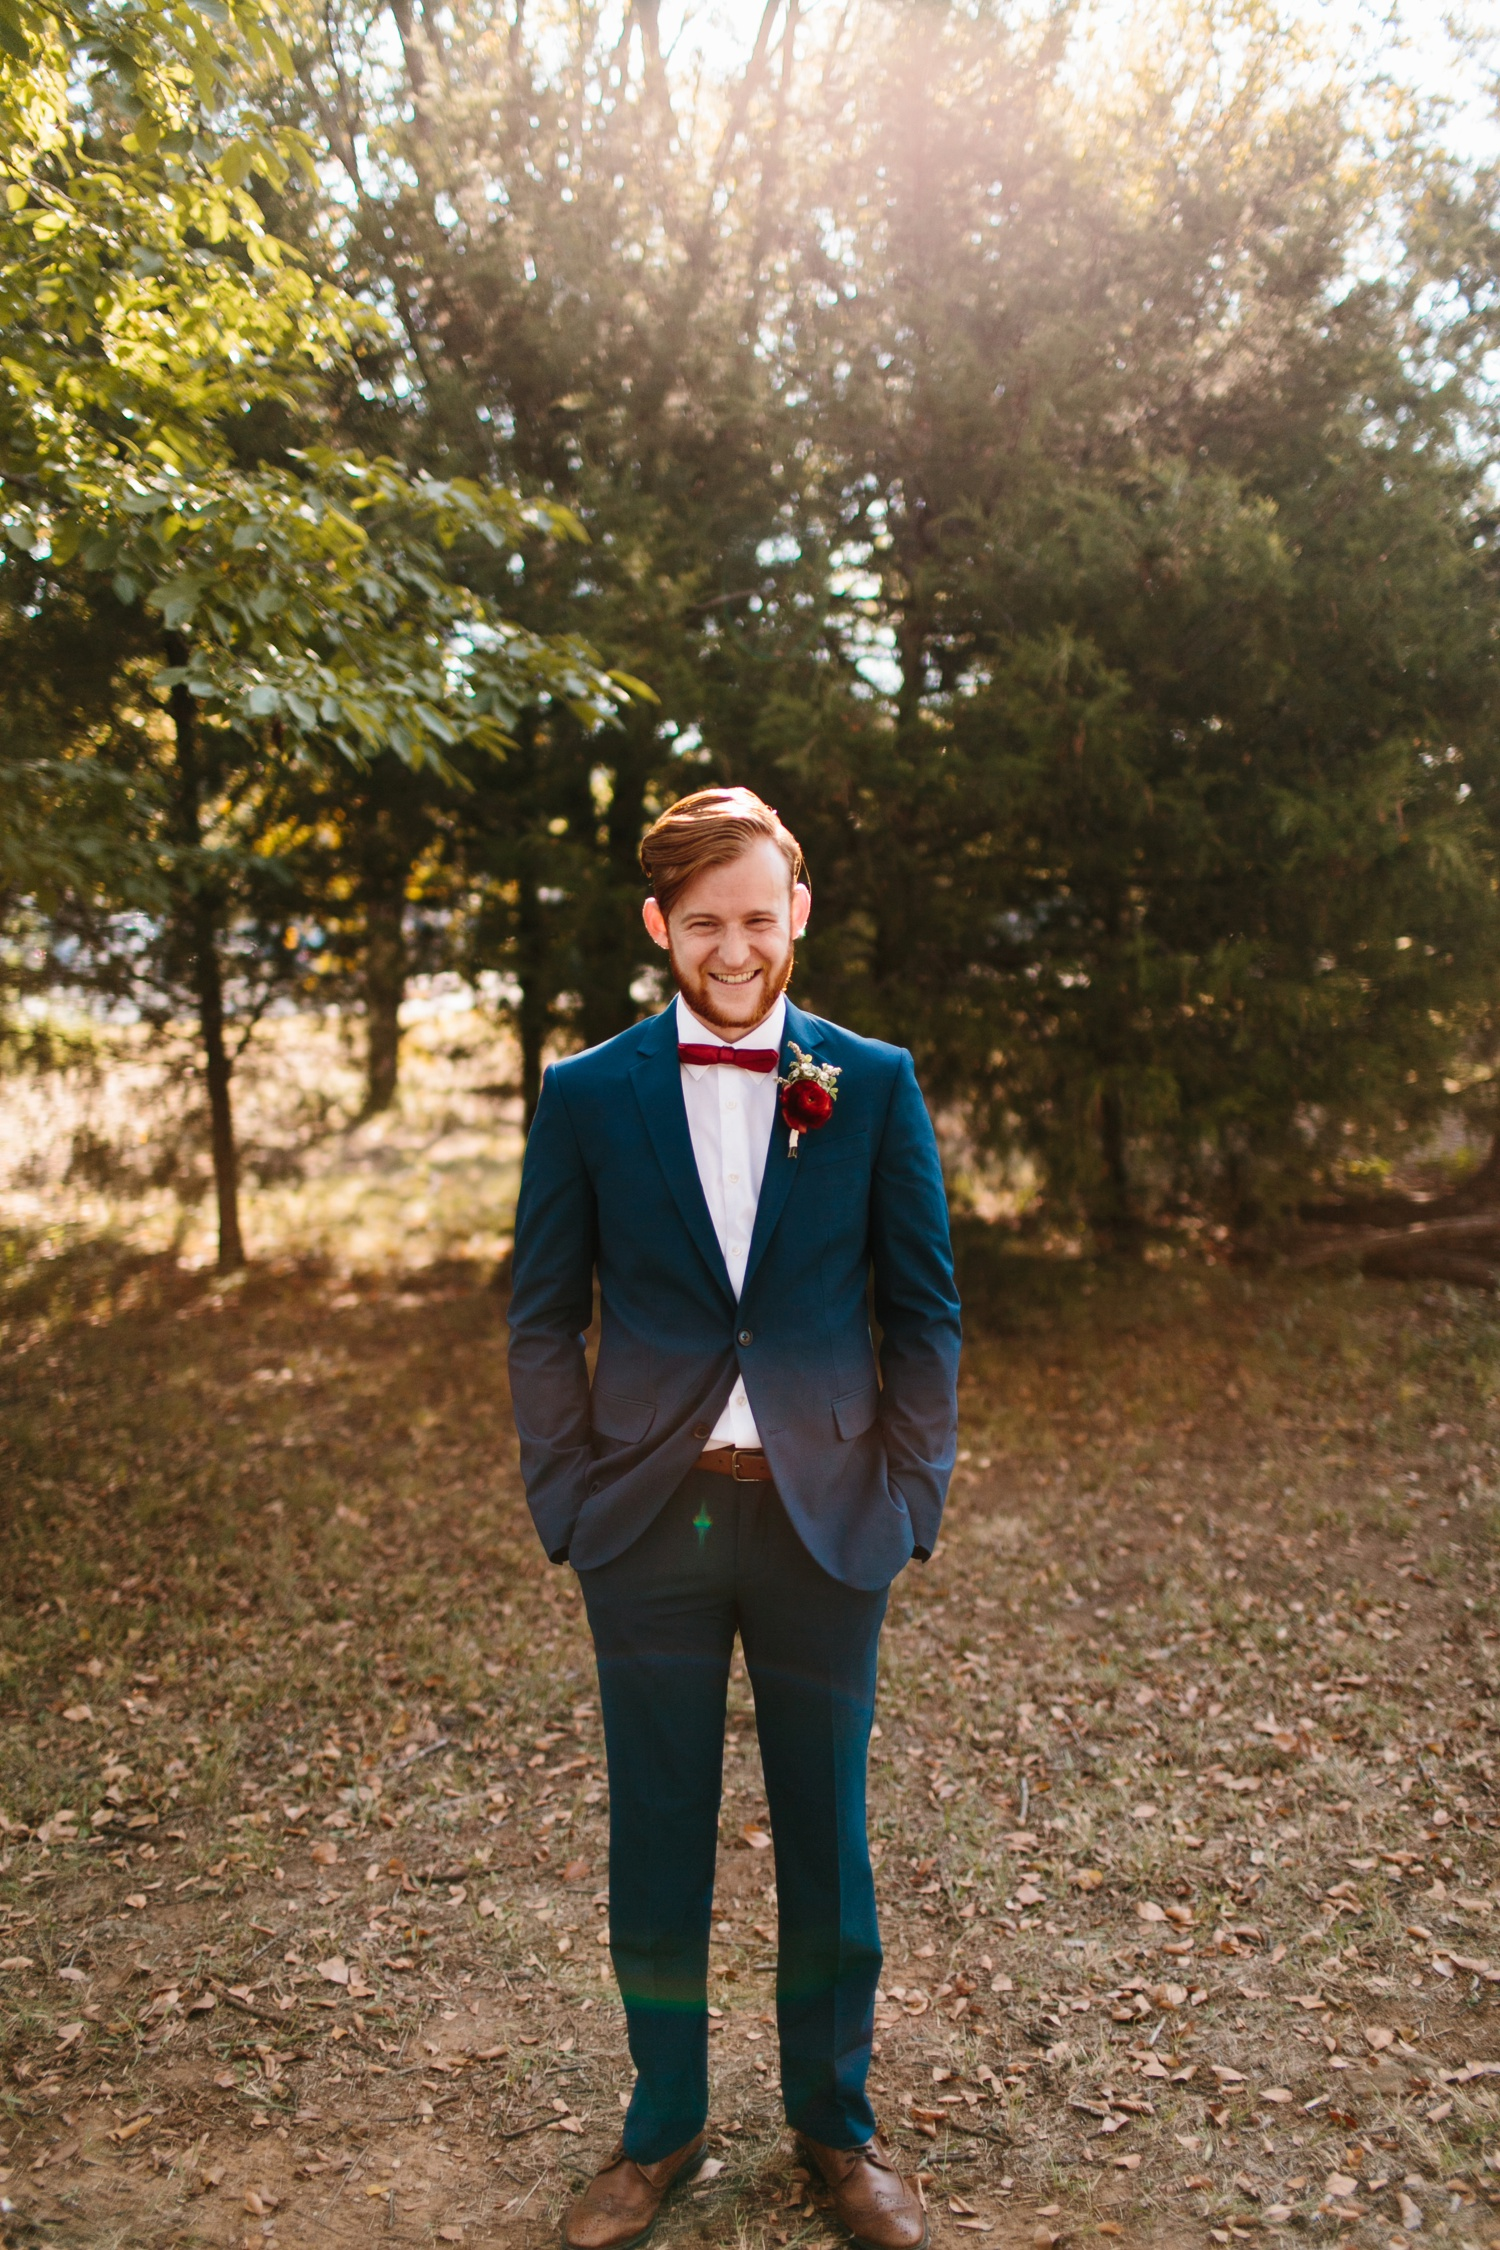 Grant + Lysette | a vibrant, deep burgundy and navy, and mixed metals wedding at Hidden Pines Chapel by North Texas Wedding Photographer Rachel Meagan Photography 032